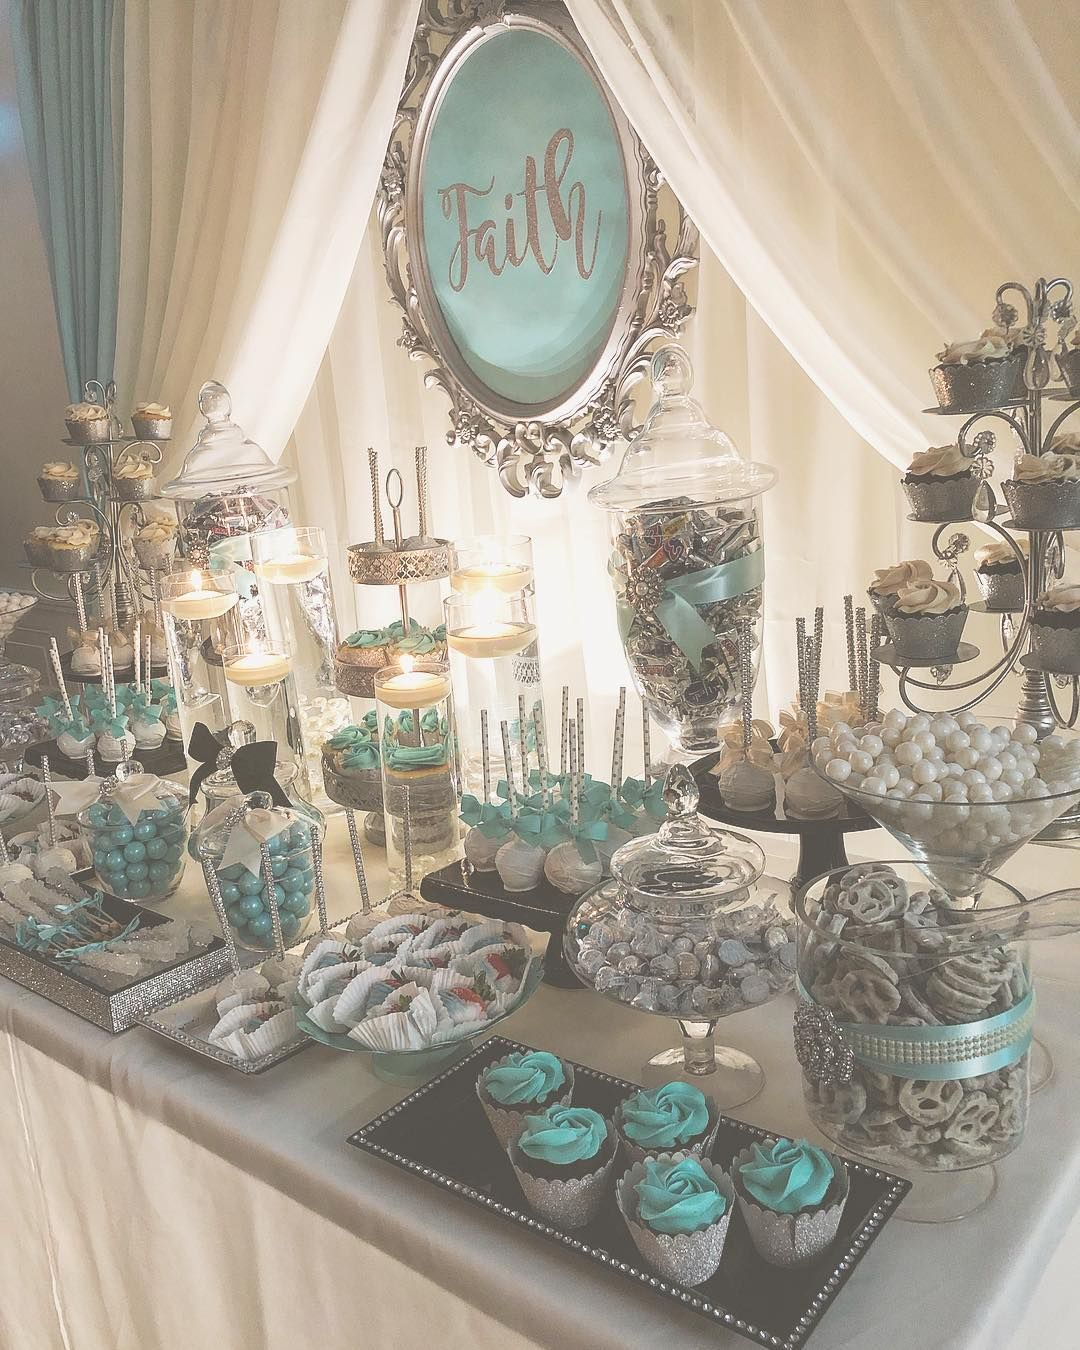 Sweet 16 #birthday #birthdaygirl #sweet16 #candybuffet #candytable #desserttable #partydecorator #sweets #philawedding #treats… #sweet16birthdayparty